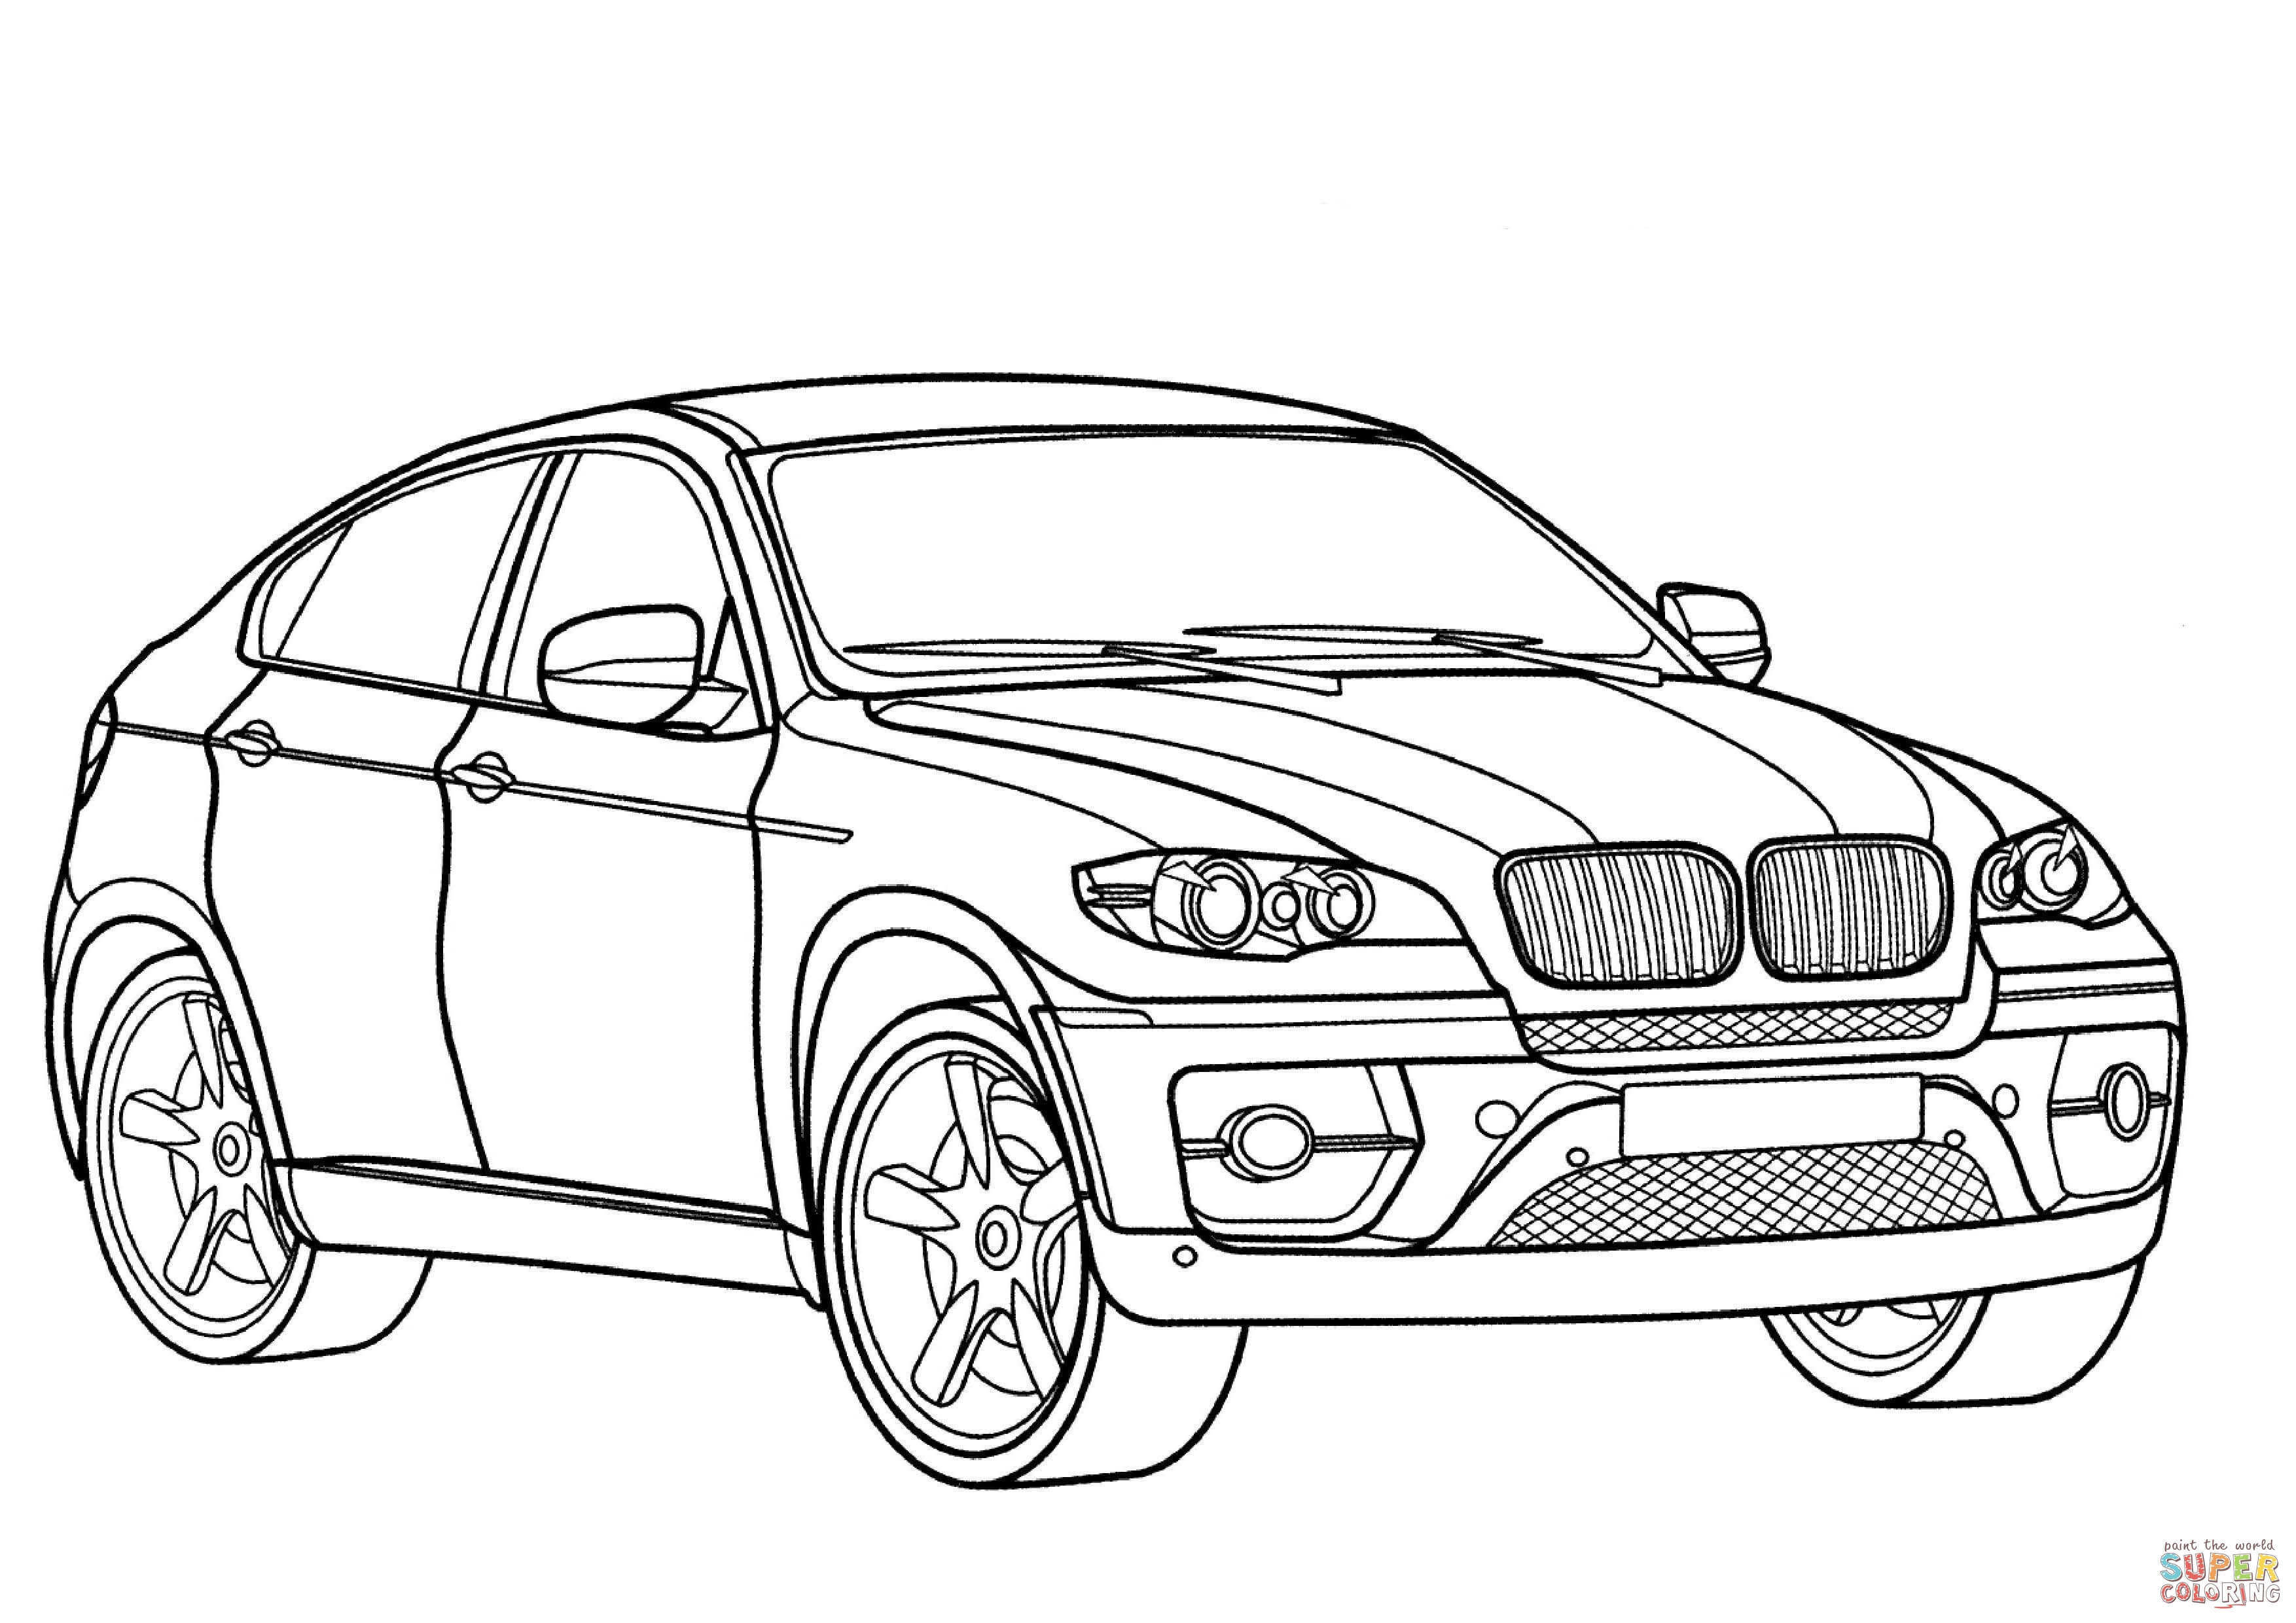 coloring cars bmw bmw coloring pages to download and print for free cars bmw coloring